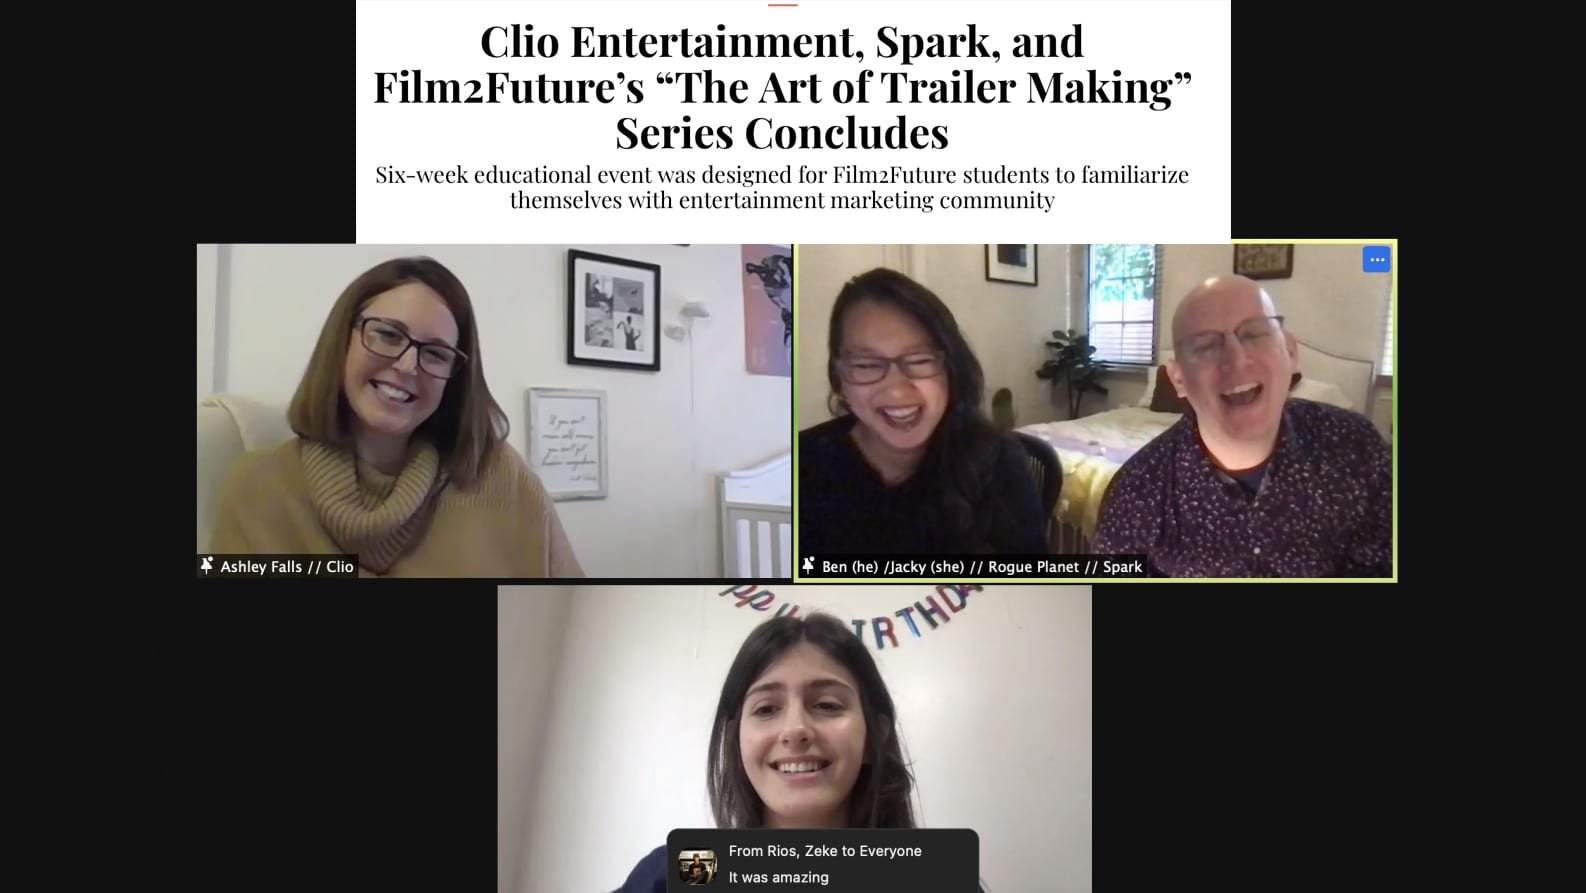 """Clio Entertainment, Spark, and Film2Future's """"The Art of Trailer Making"""" Series Concludes"""